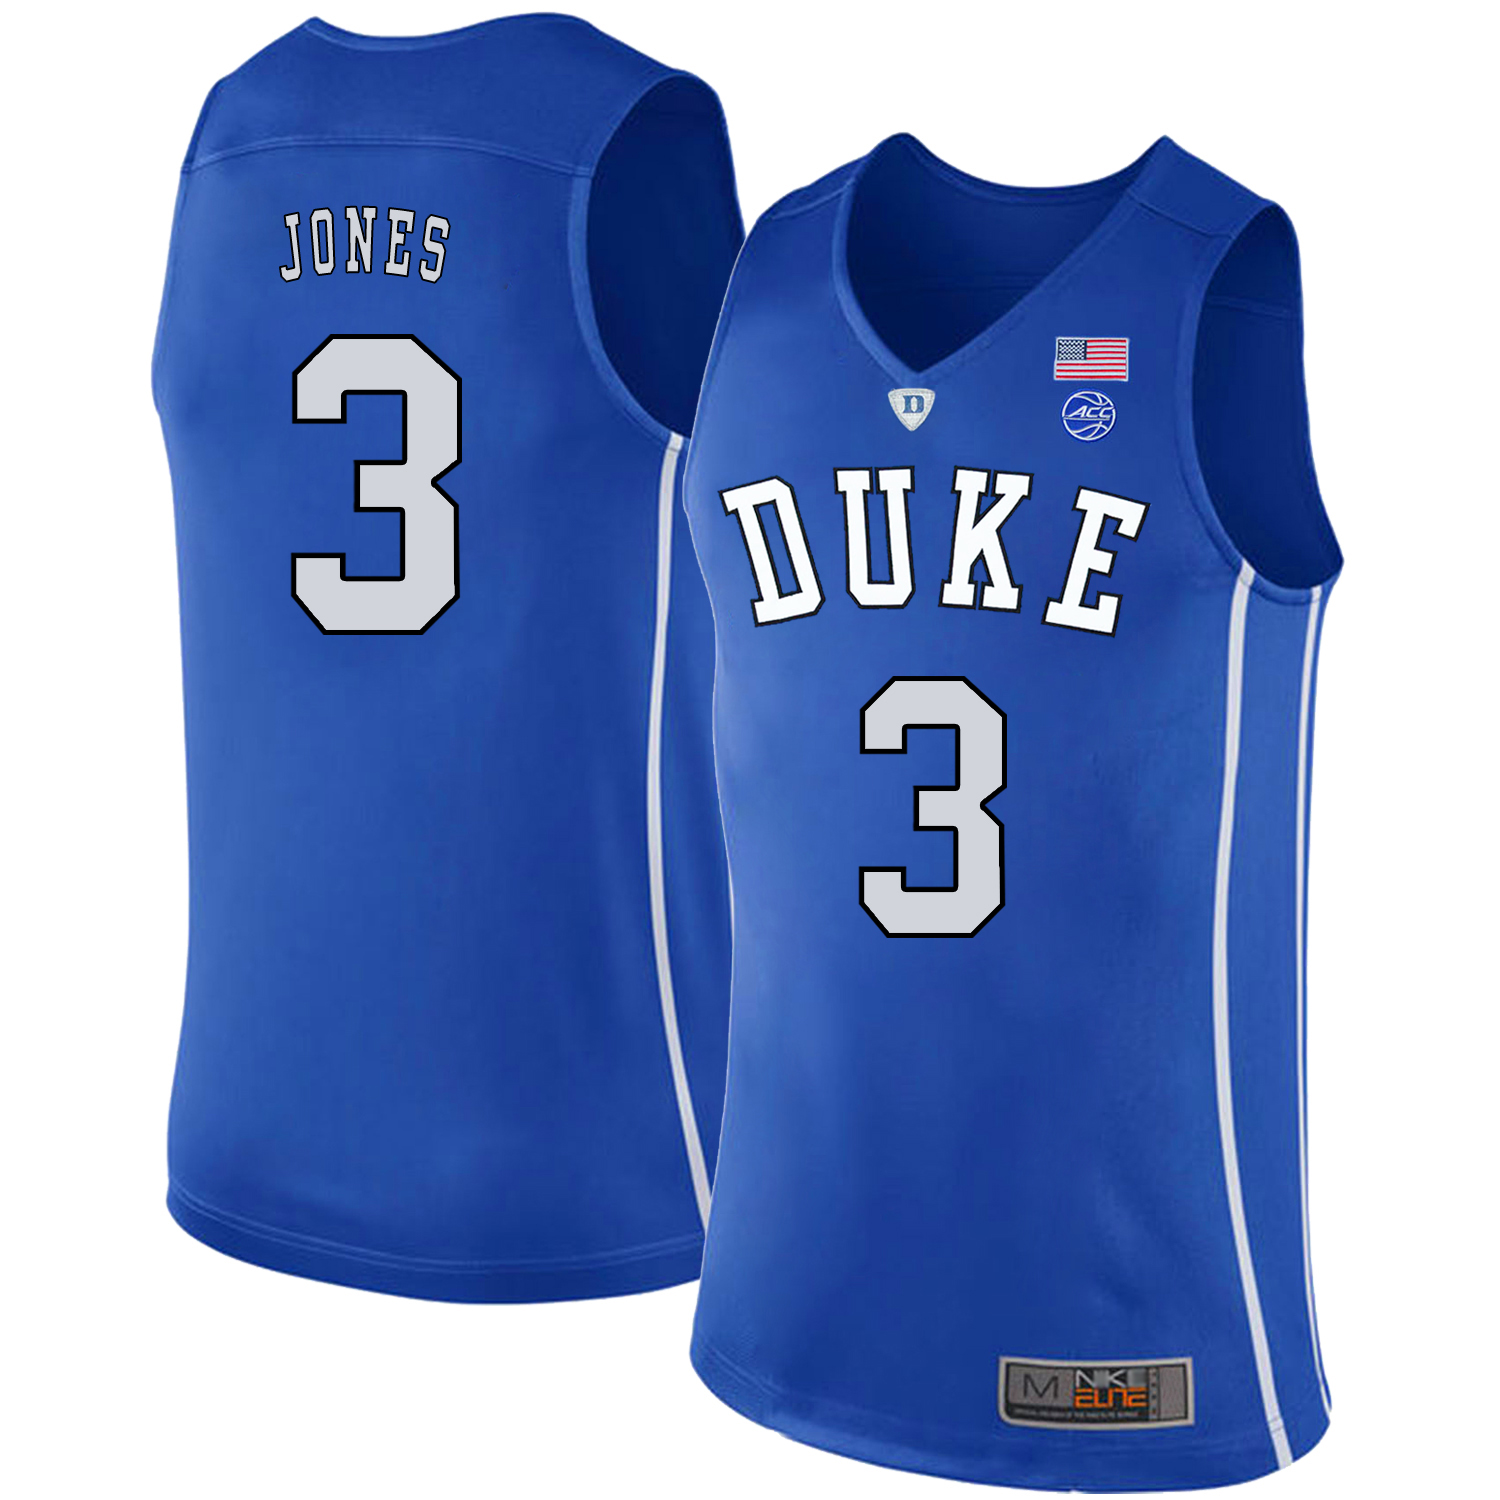 Majestic Athletic Men??s Duke Blue Devils #3 Tre Jones Black College Basketball Jersey